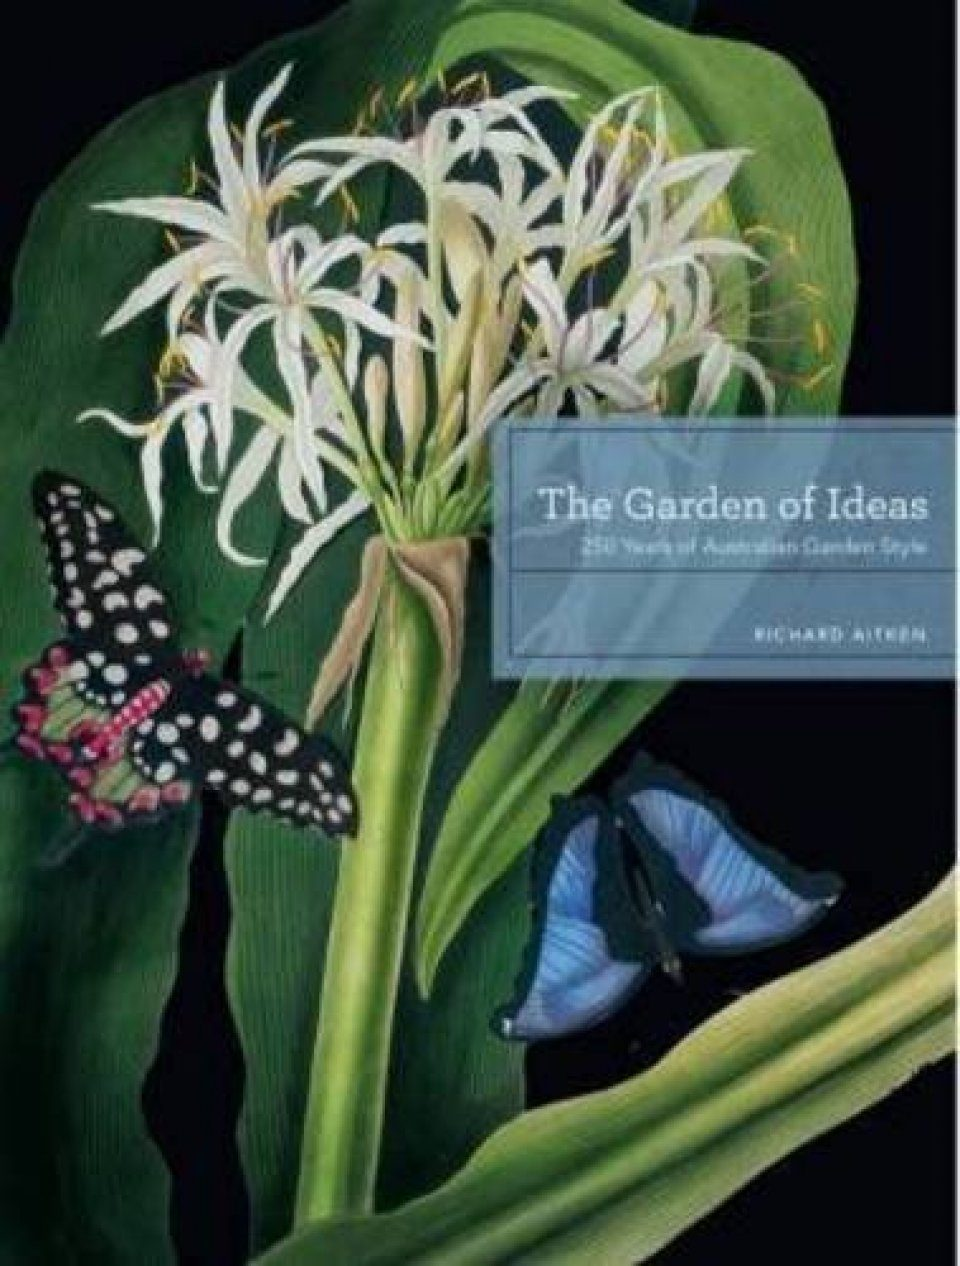 The Garden of Ideas